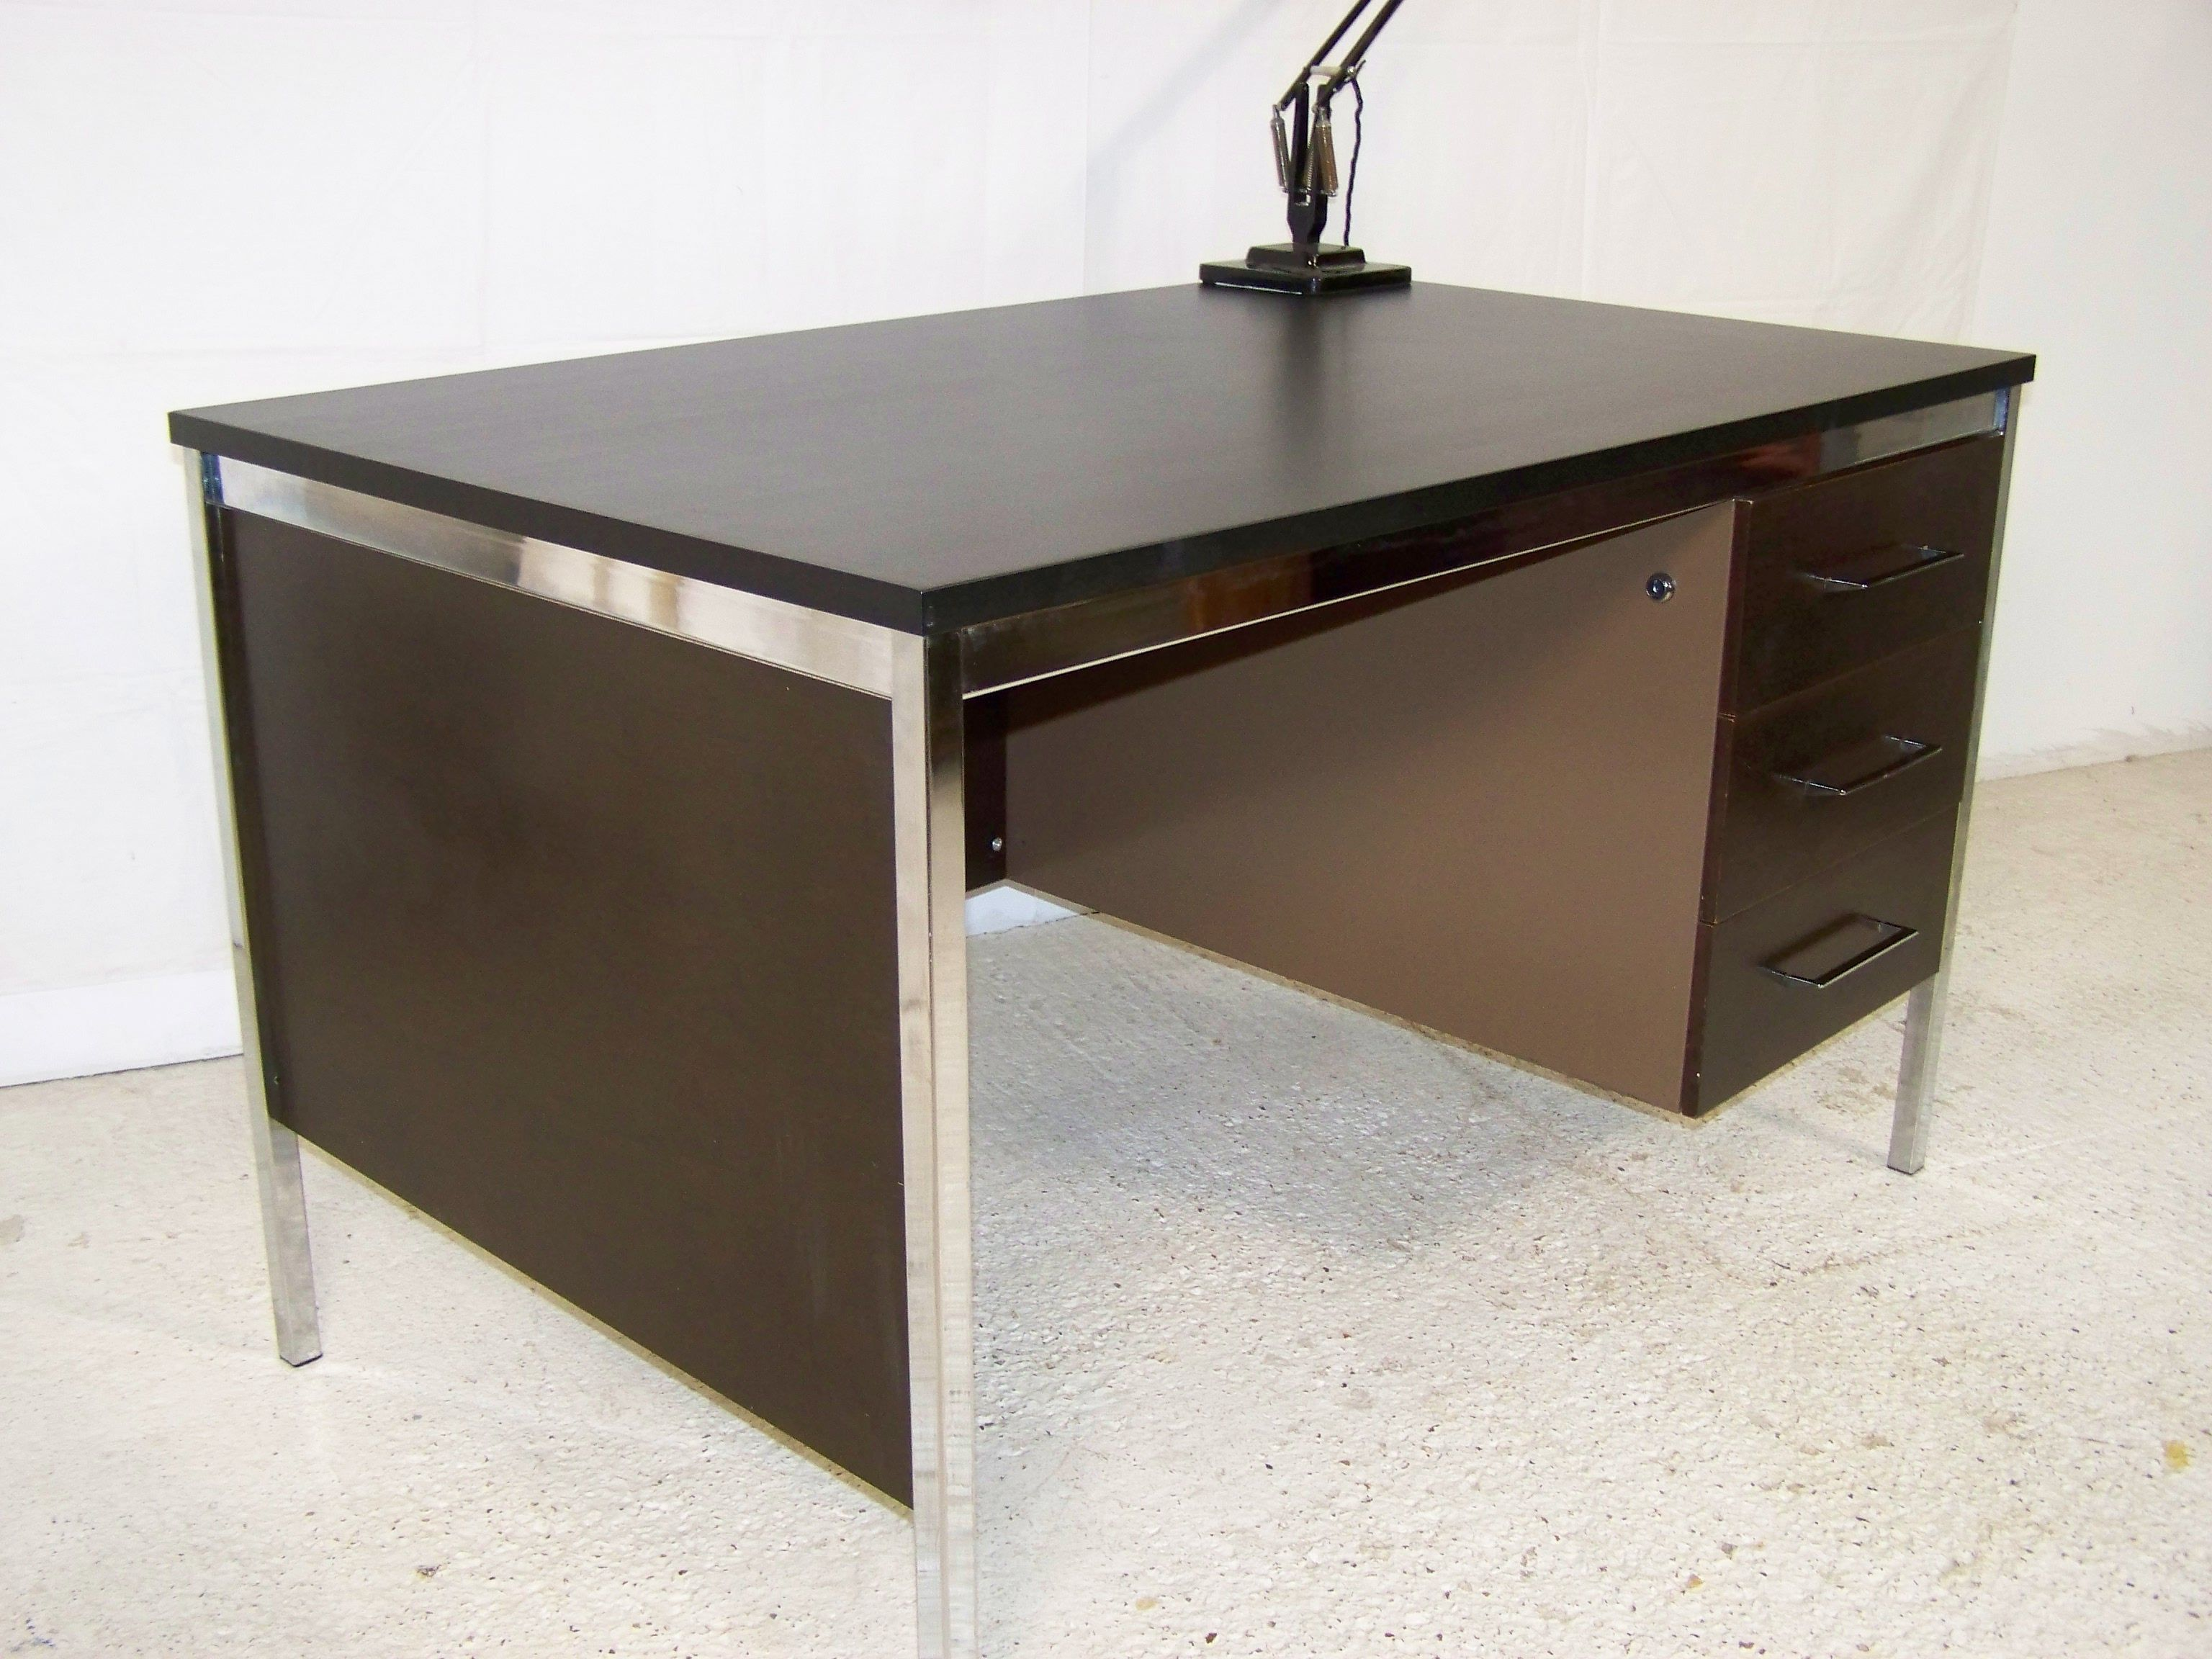 Vintage Retro Metal Desk By Roneo Vickers £425